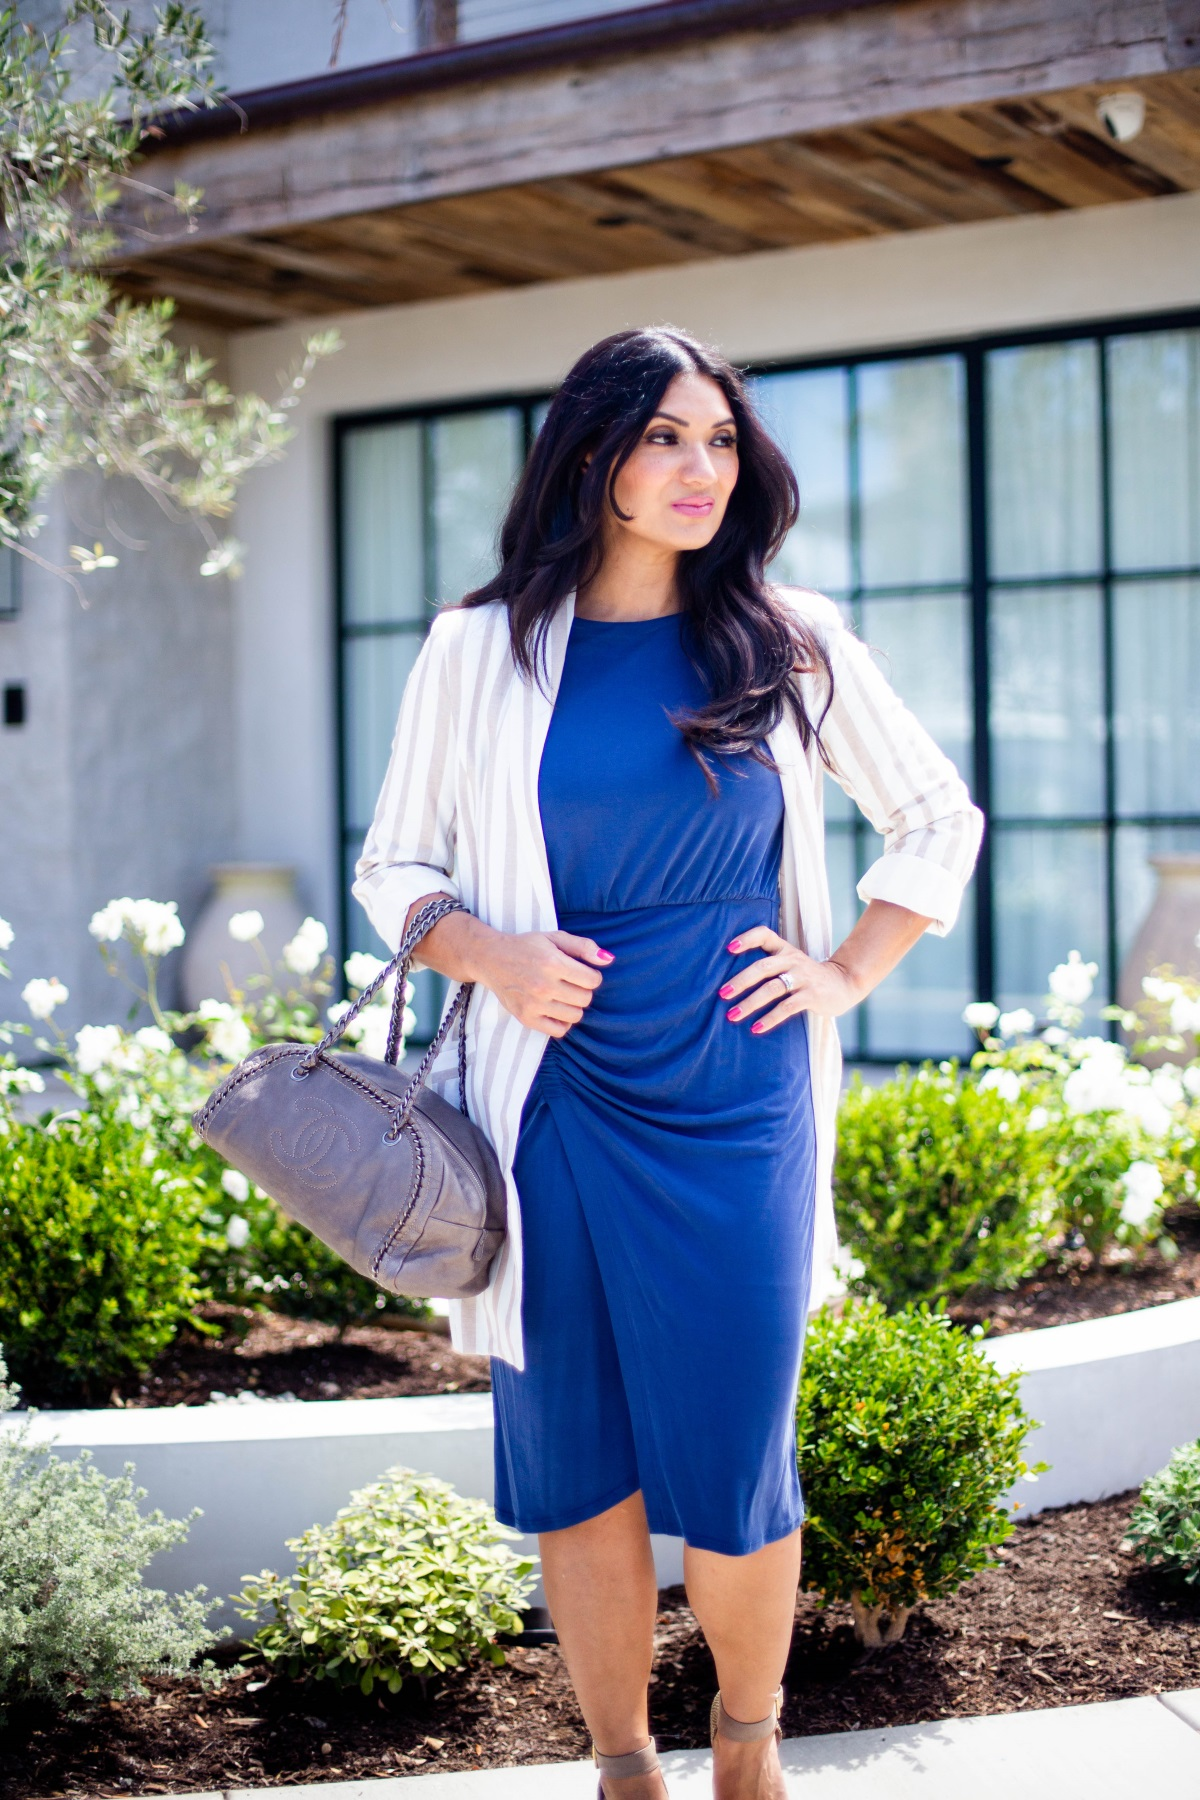 Bookmark this post ASAP if you have ever wanted to style the boyfriend blazer trend. Orange County Fashion Blogger Debbie Savage is sharing her favorite way to style the boyfriend blazer trend like a pro!